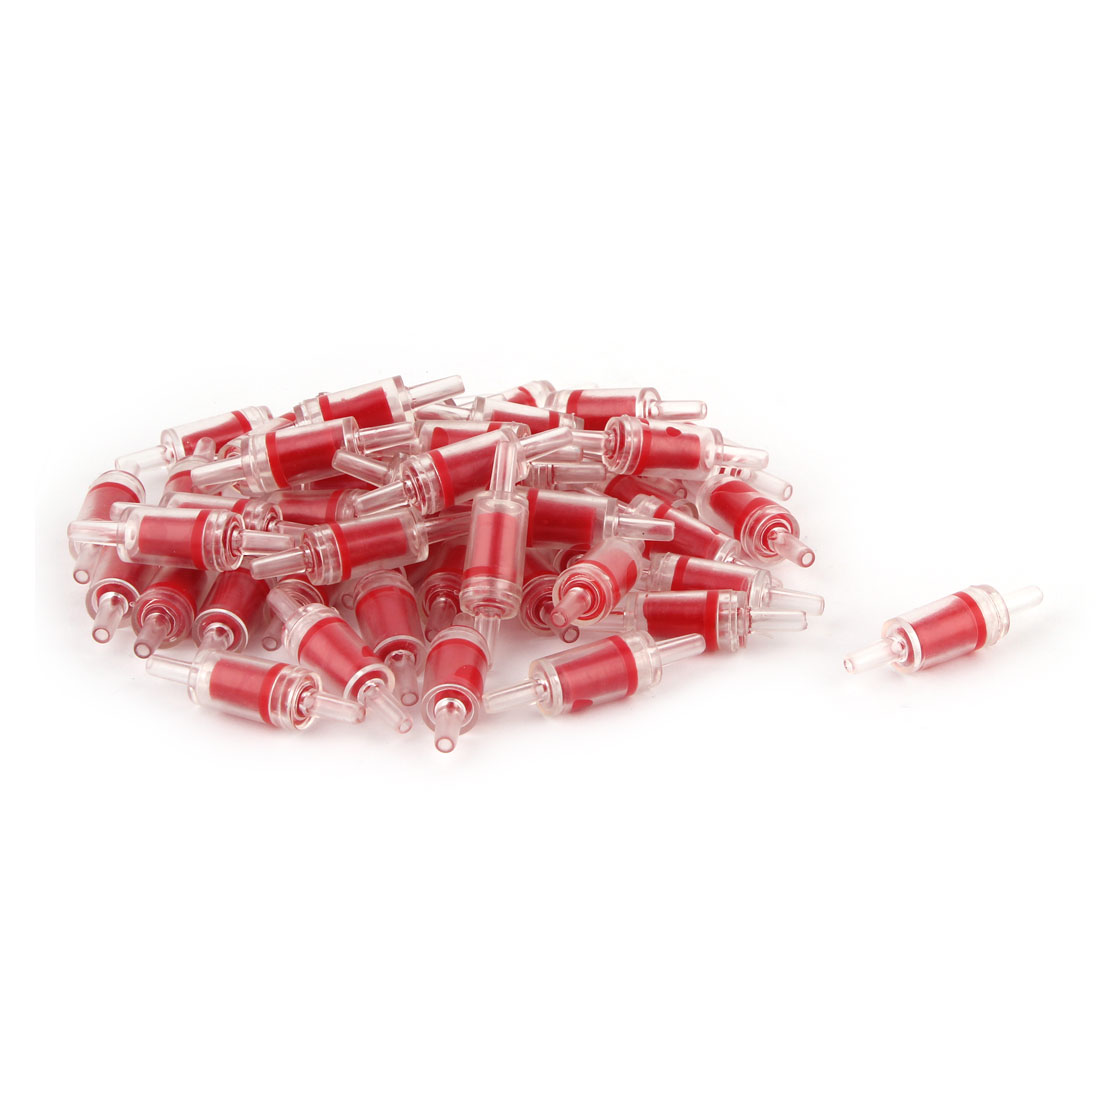 Plastic Aquarium Fish Tank Air Pump Check Valves Red Clear 50 Pcs